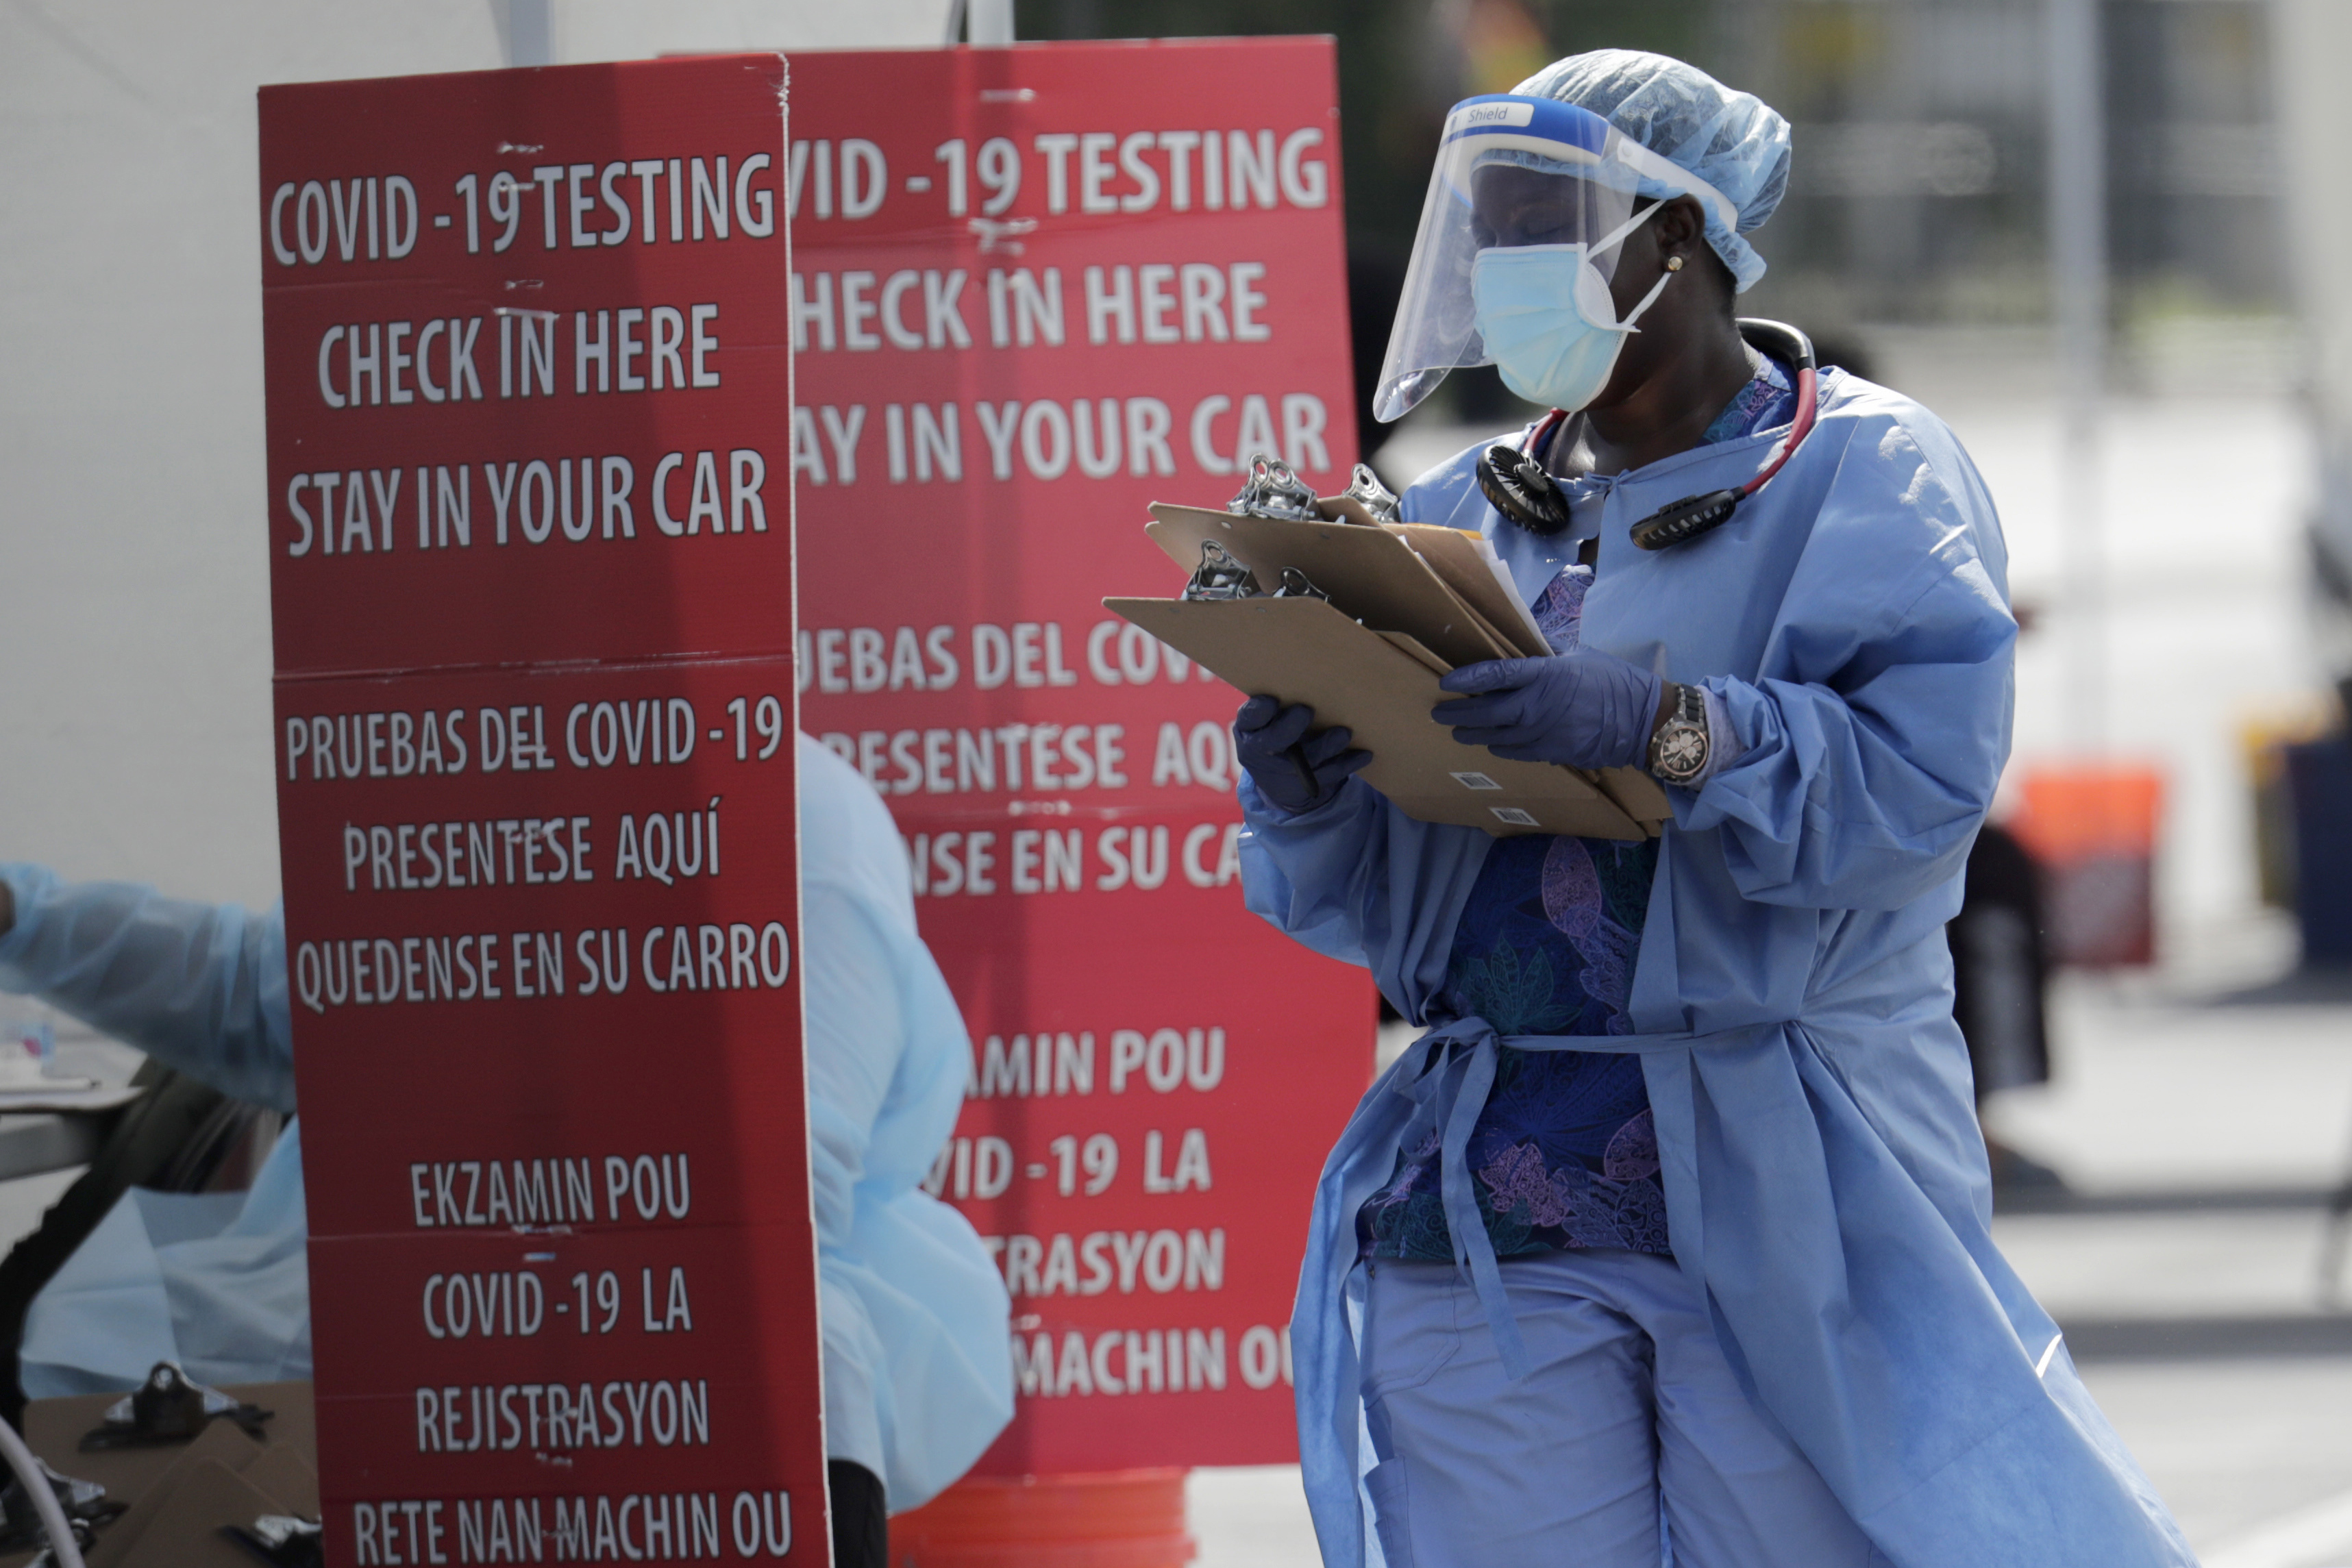 A health care worker carries a stack of clipboards at a Covid-19 testing site on July 6, in Homestead, Florida.